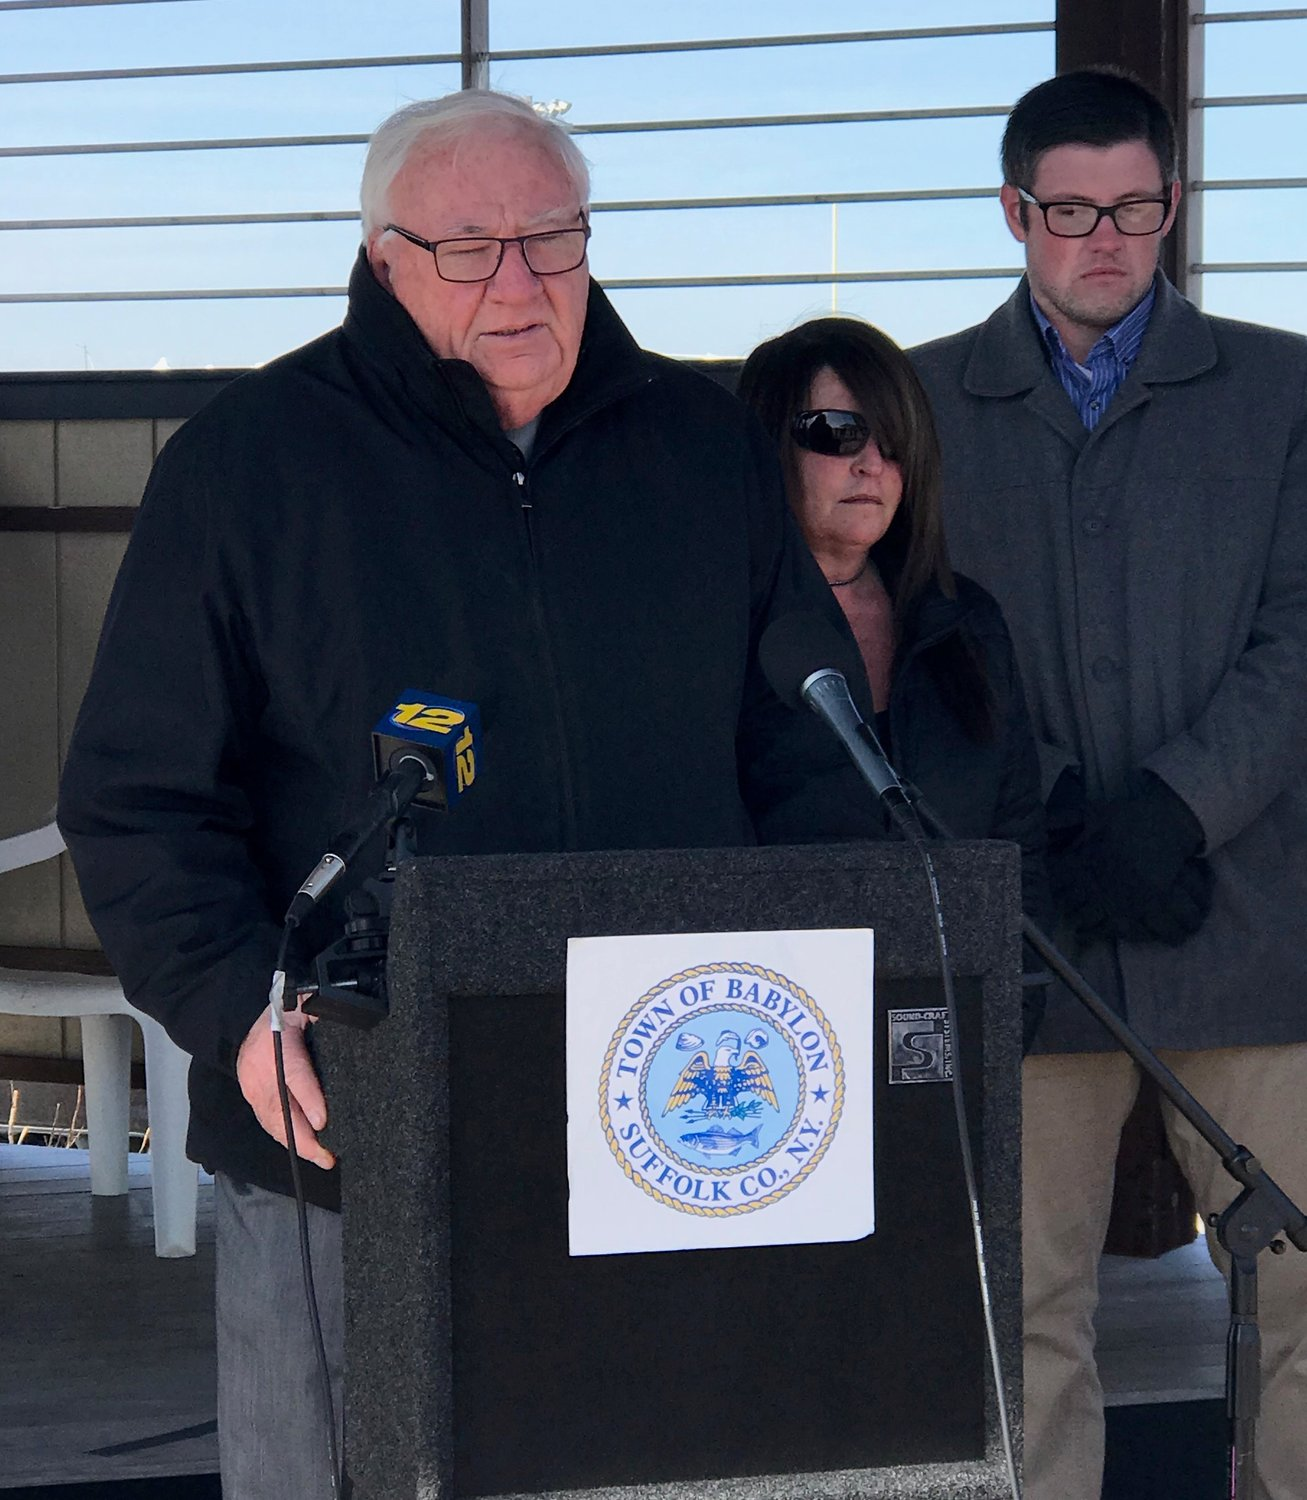 Senator John Brooks, at the lectern, announced the passing of Brianna's Law, bill S.5685 that requires boaters to take safety boating courses and exams to operate vessels on navigable waters.